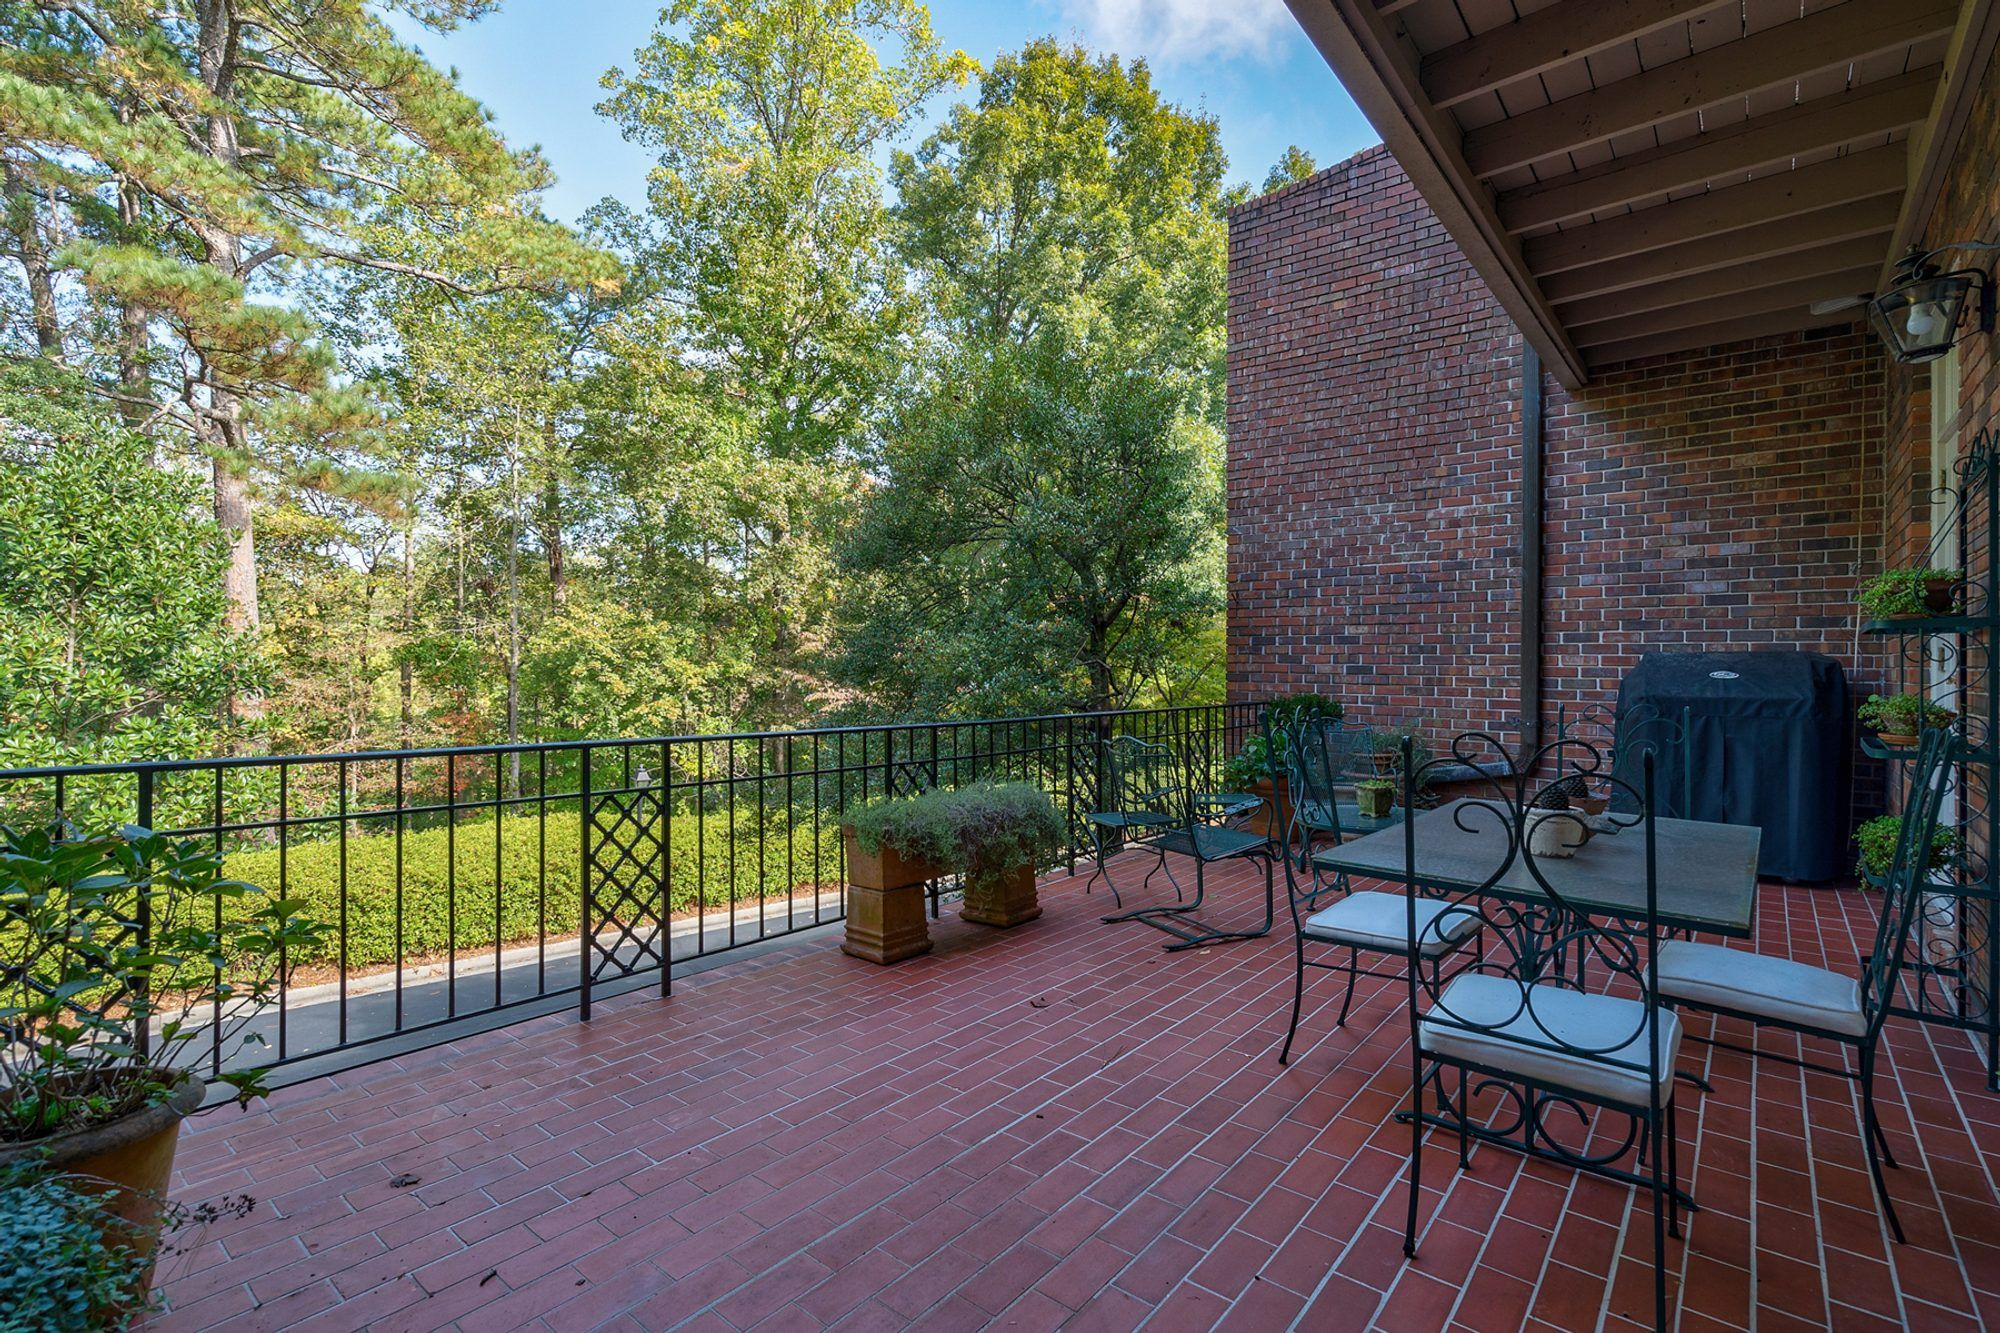 Red Brick Patio Ideas | DIY Paver Designs & Pictues in ... on Red Paver Patio Ideas id=71156